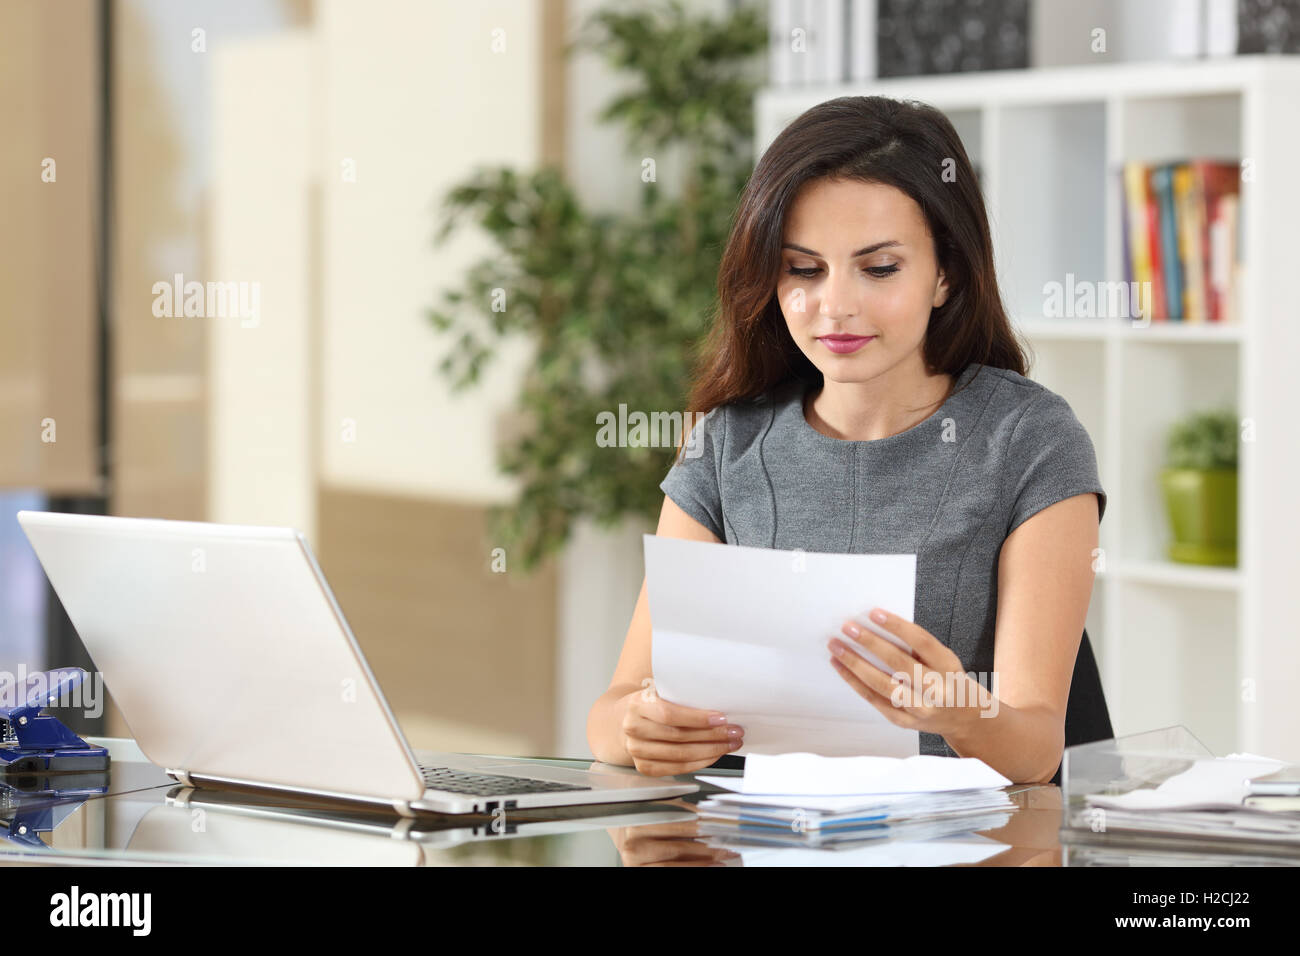 Portrait of a businesswoman working at office reading a letter in a desktop - Stock Image